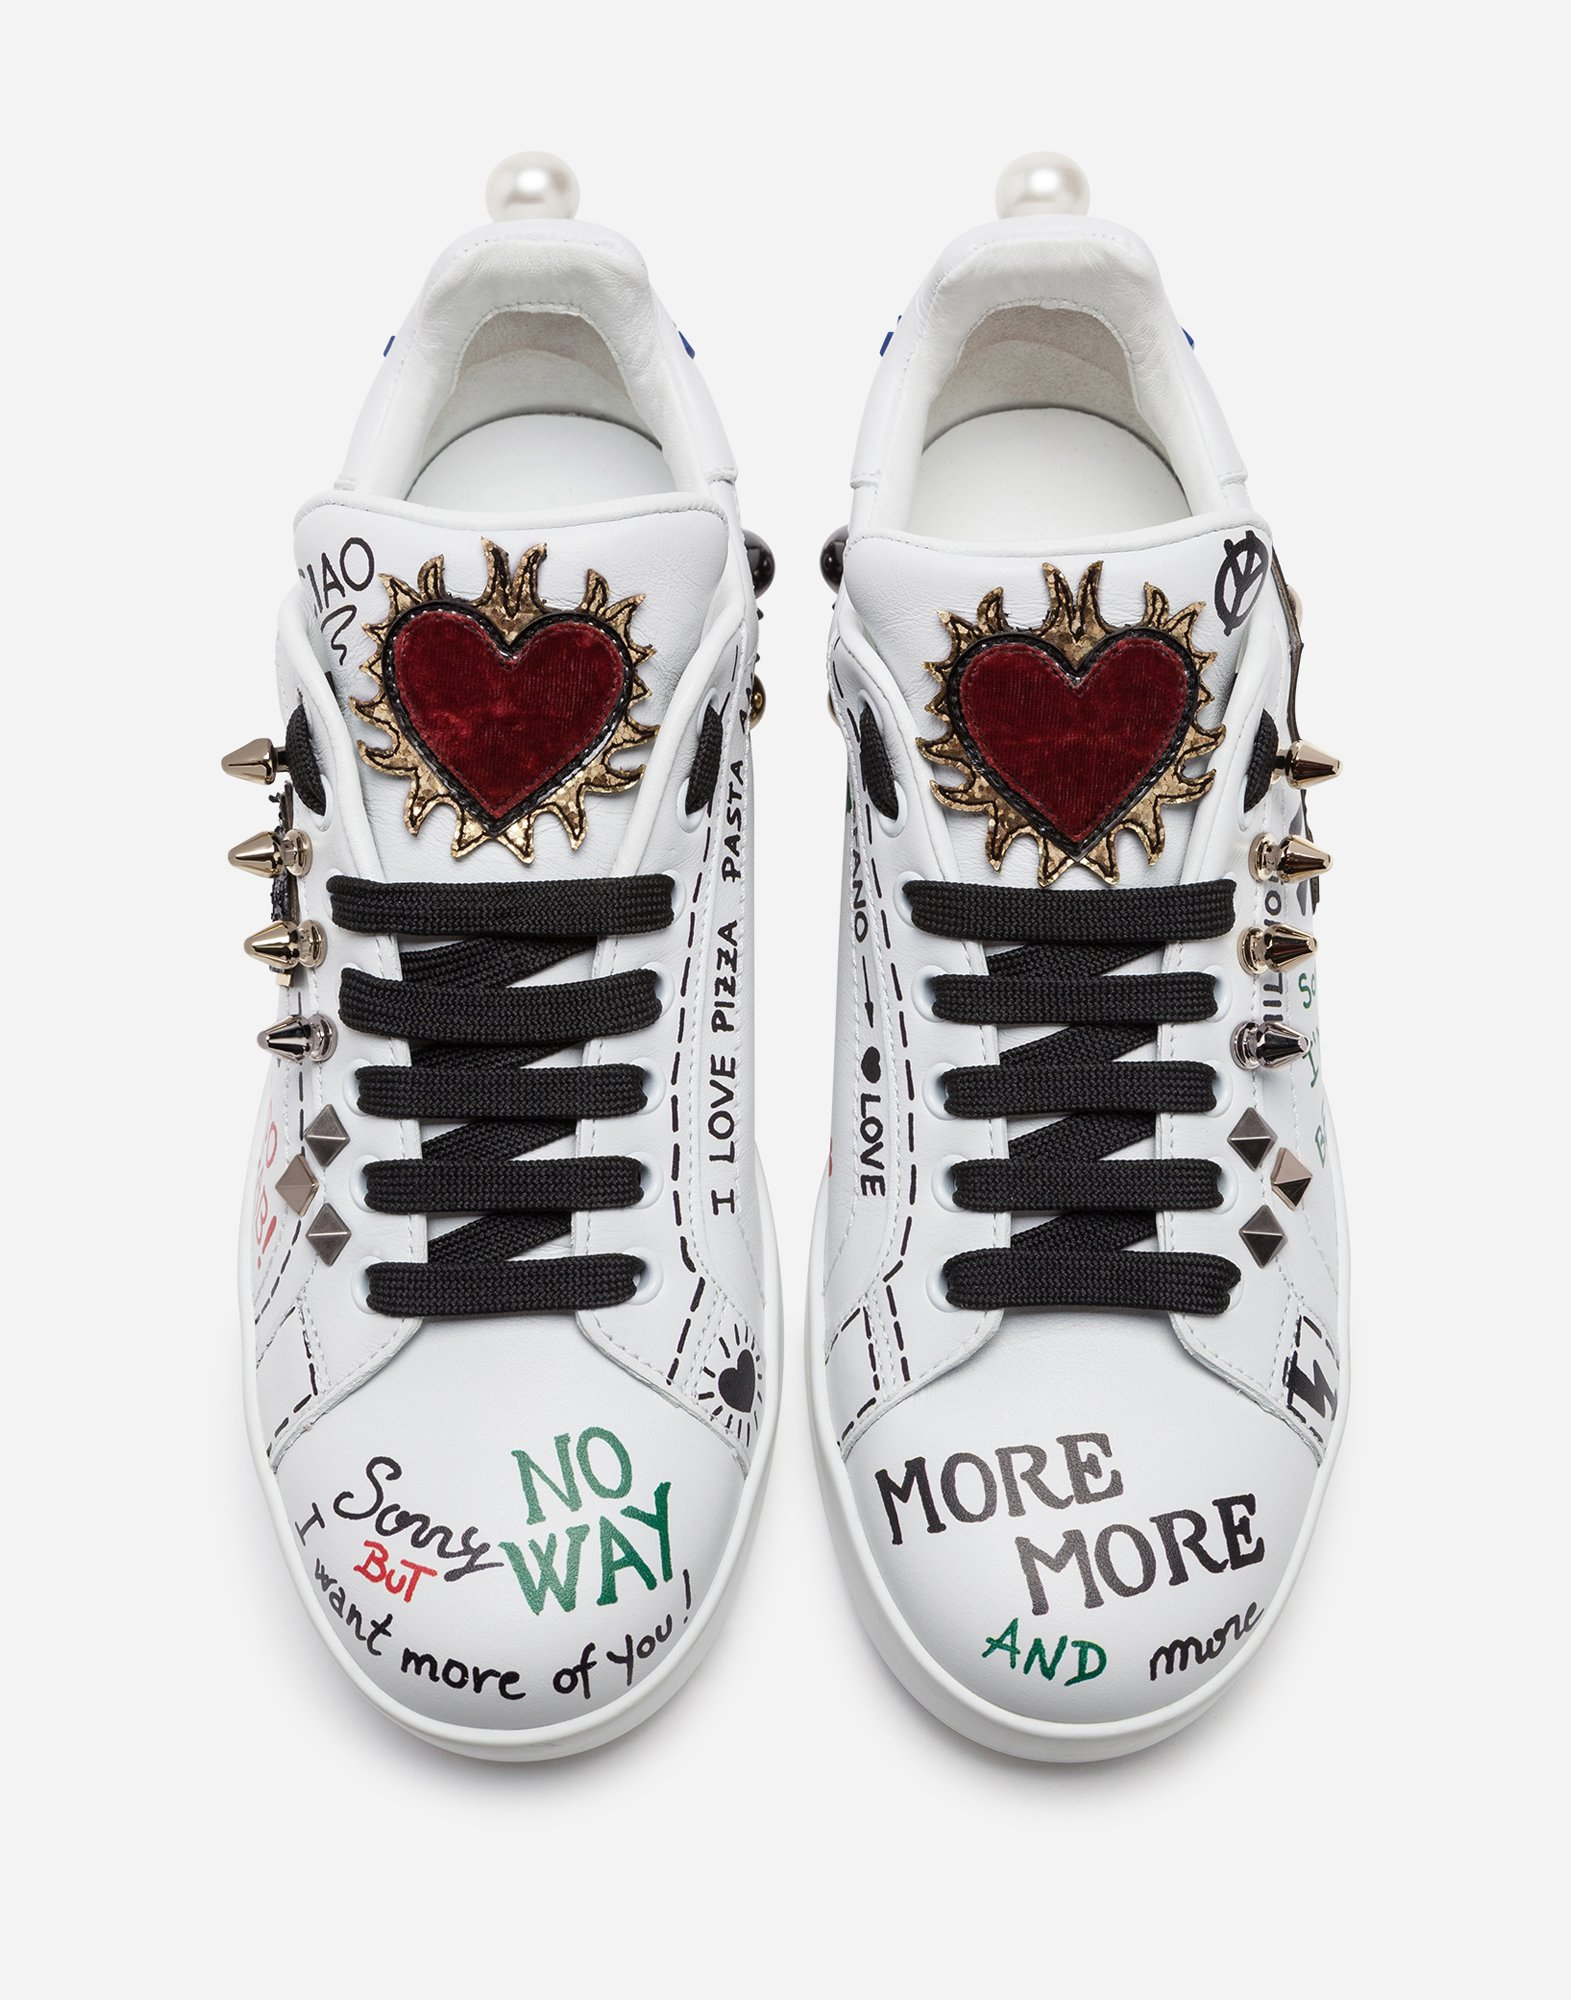 PRINTED LEATHER PORTOFINO SNEAKERS WITH APPLIQUÉ